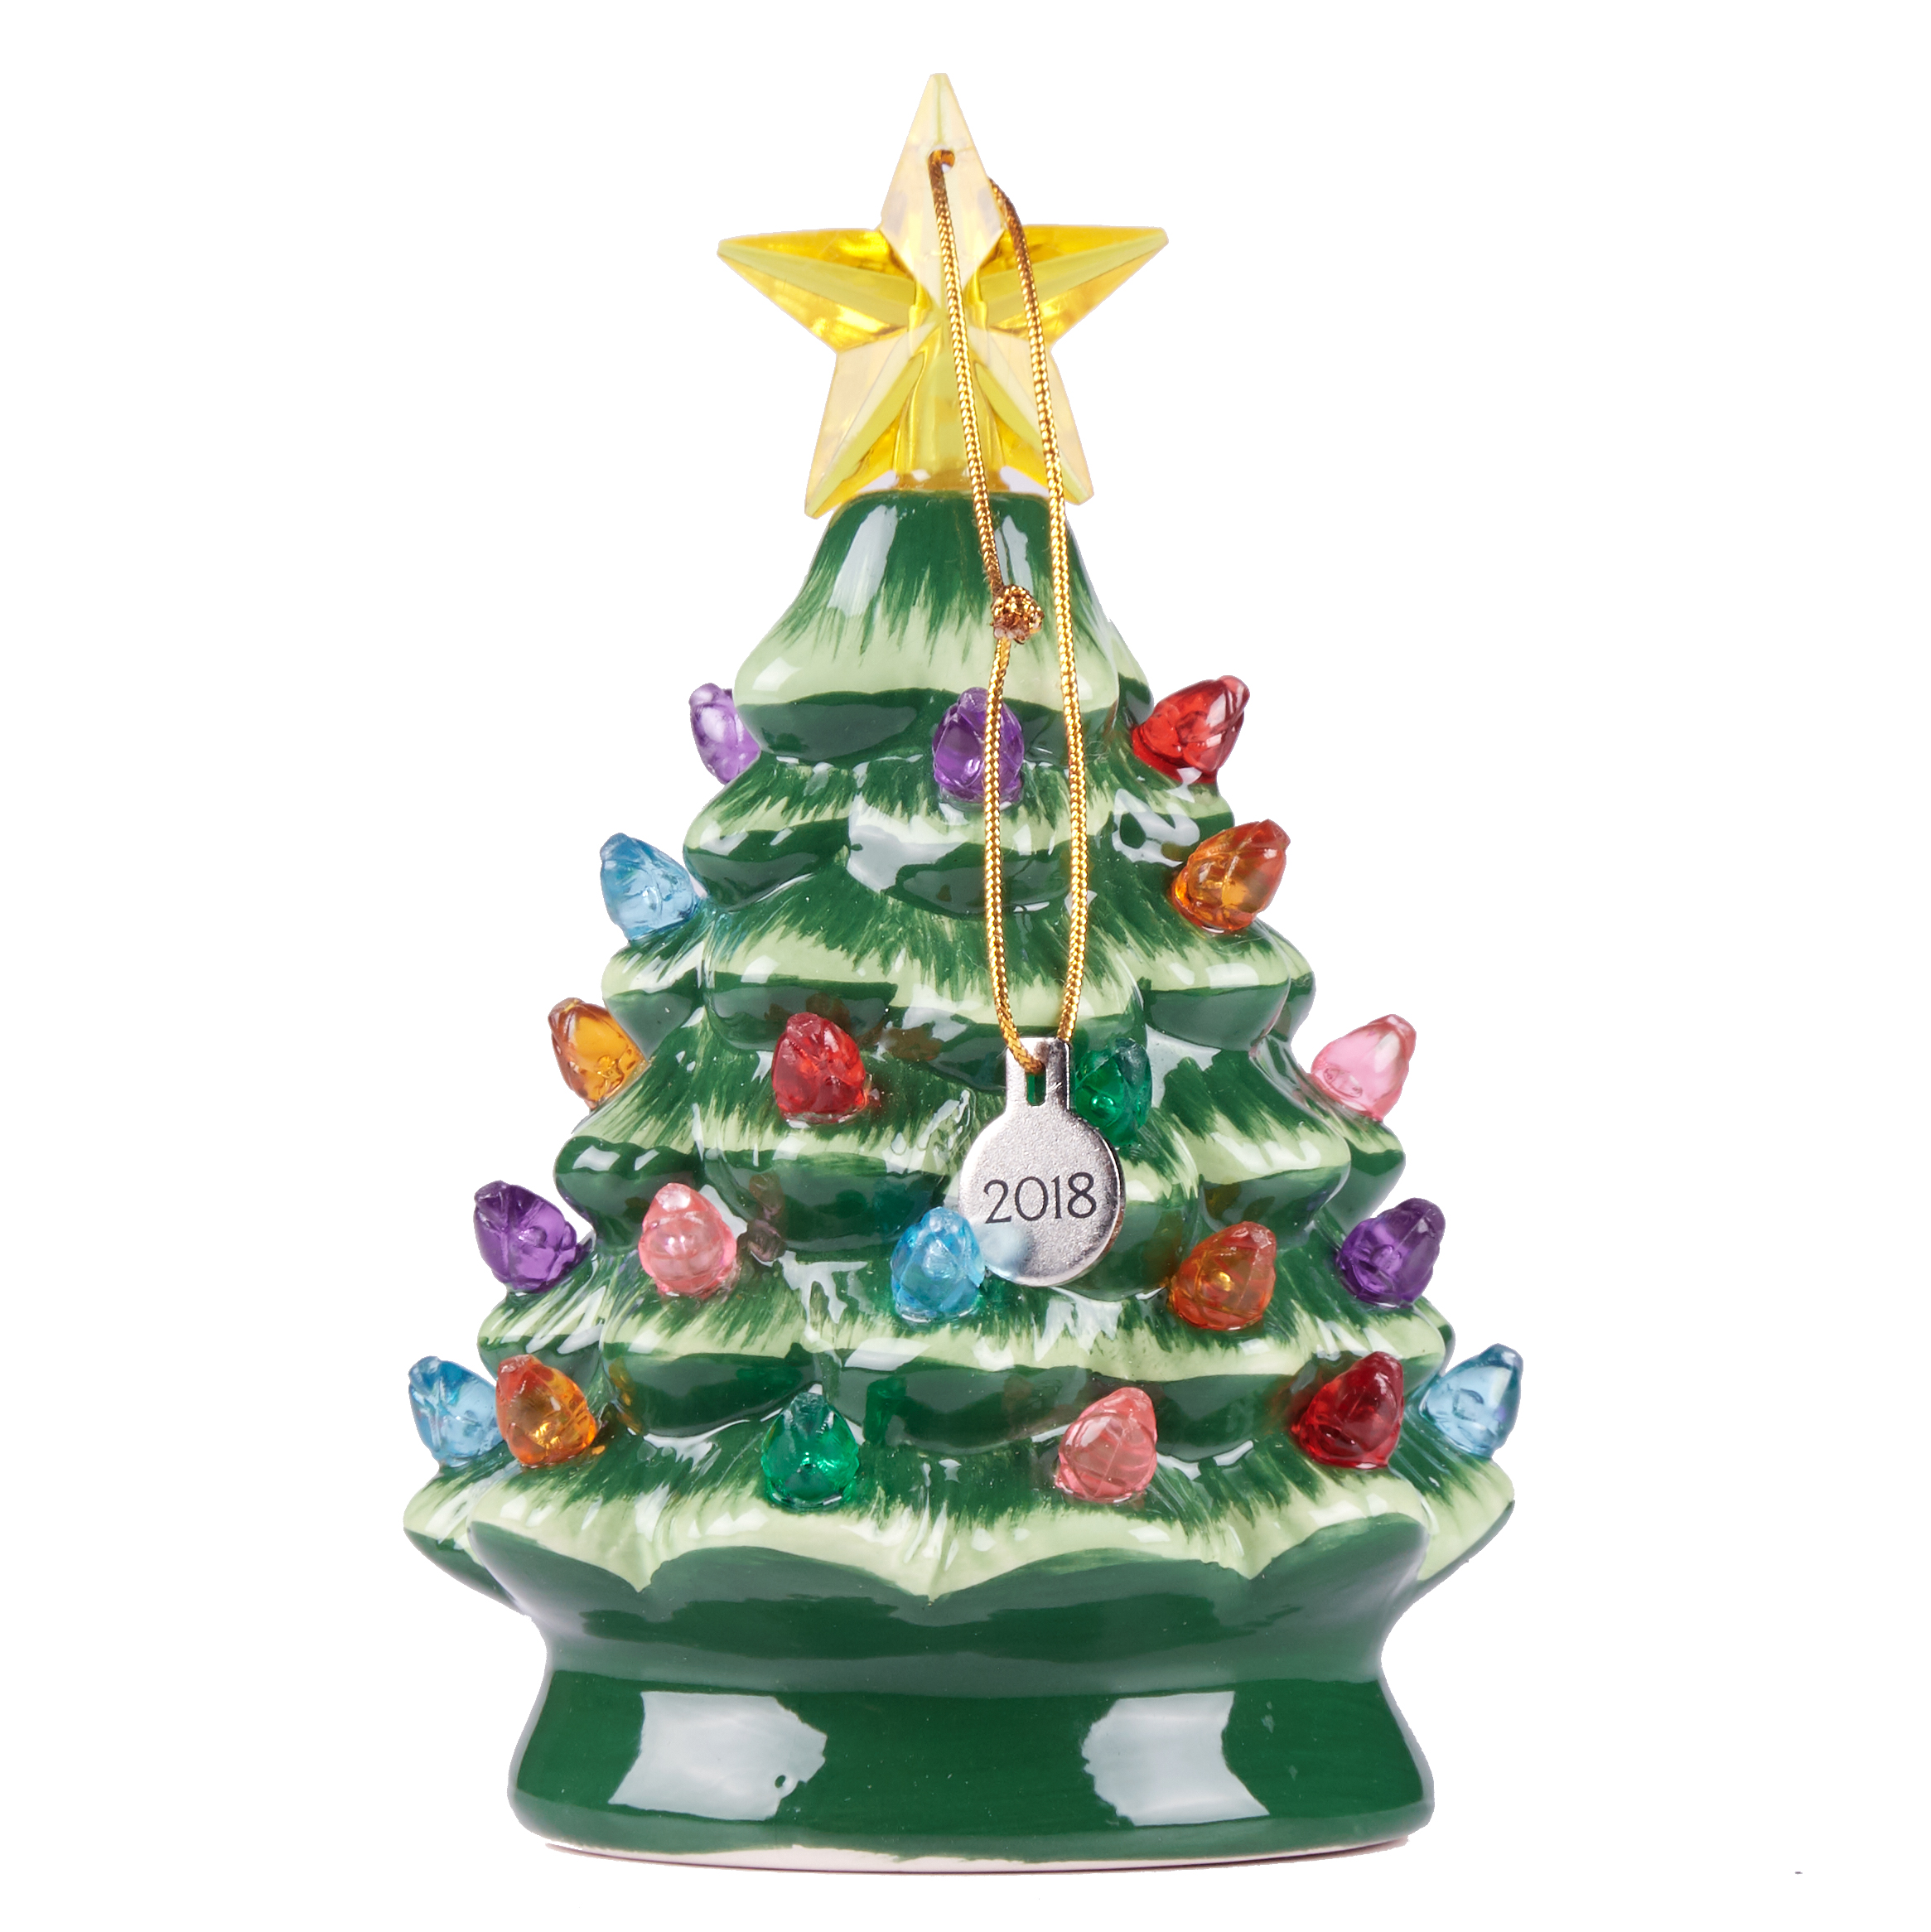 Holiday Time Mr. Christmas Nostalgic Tree Ornament with Multicolored Lights, 5 Inches